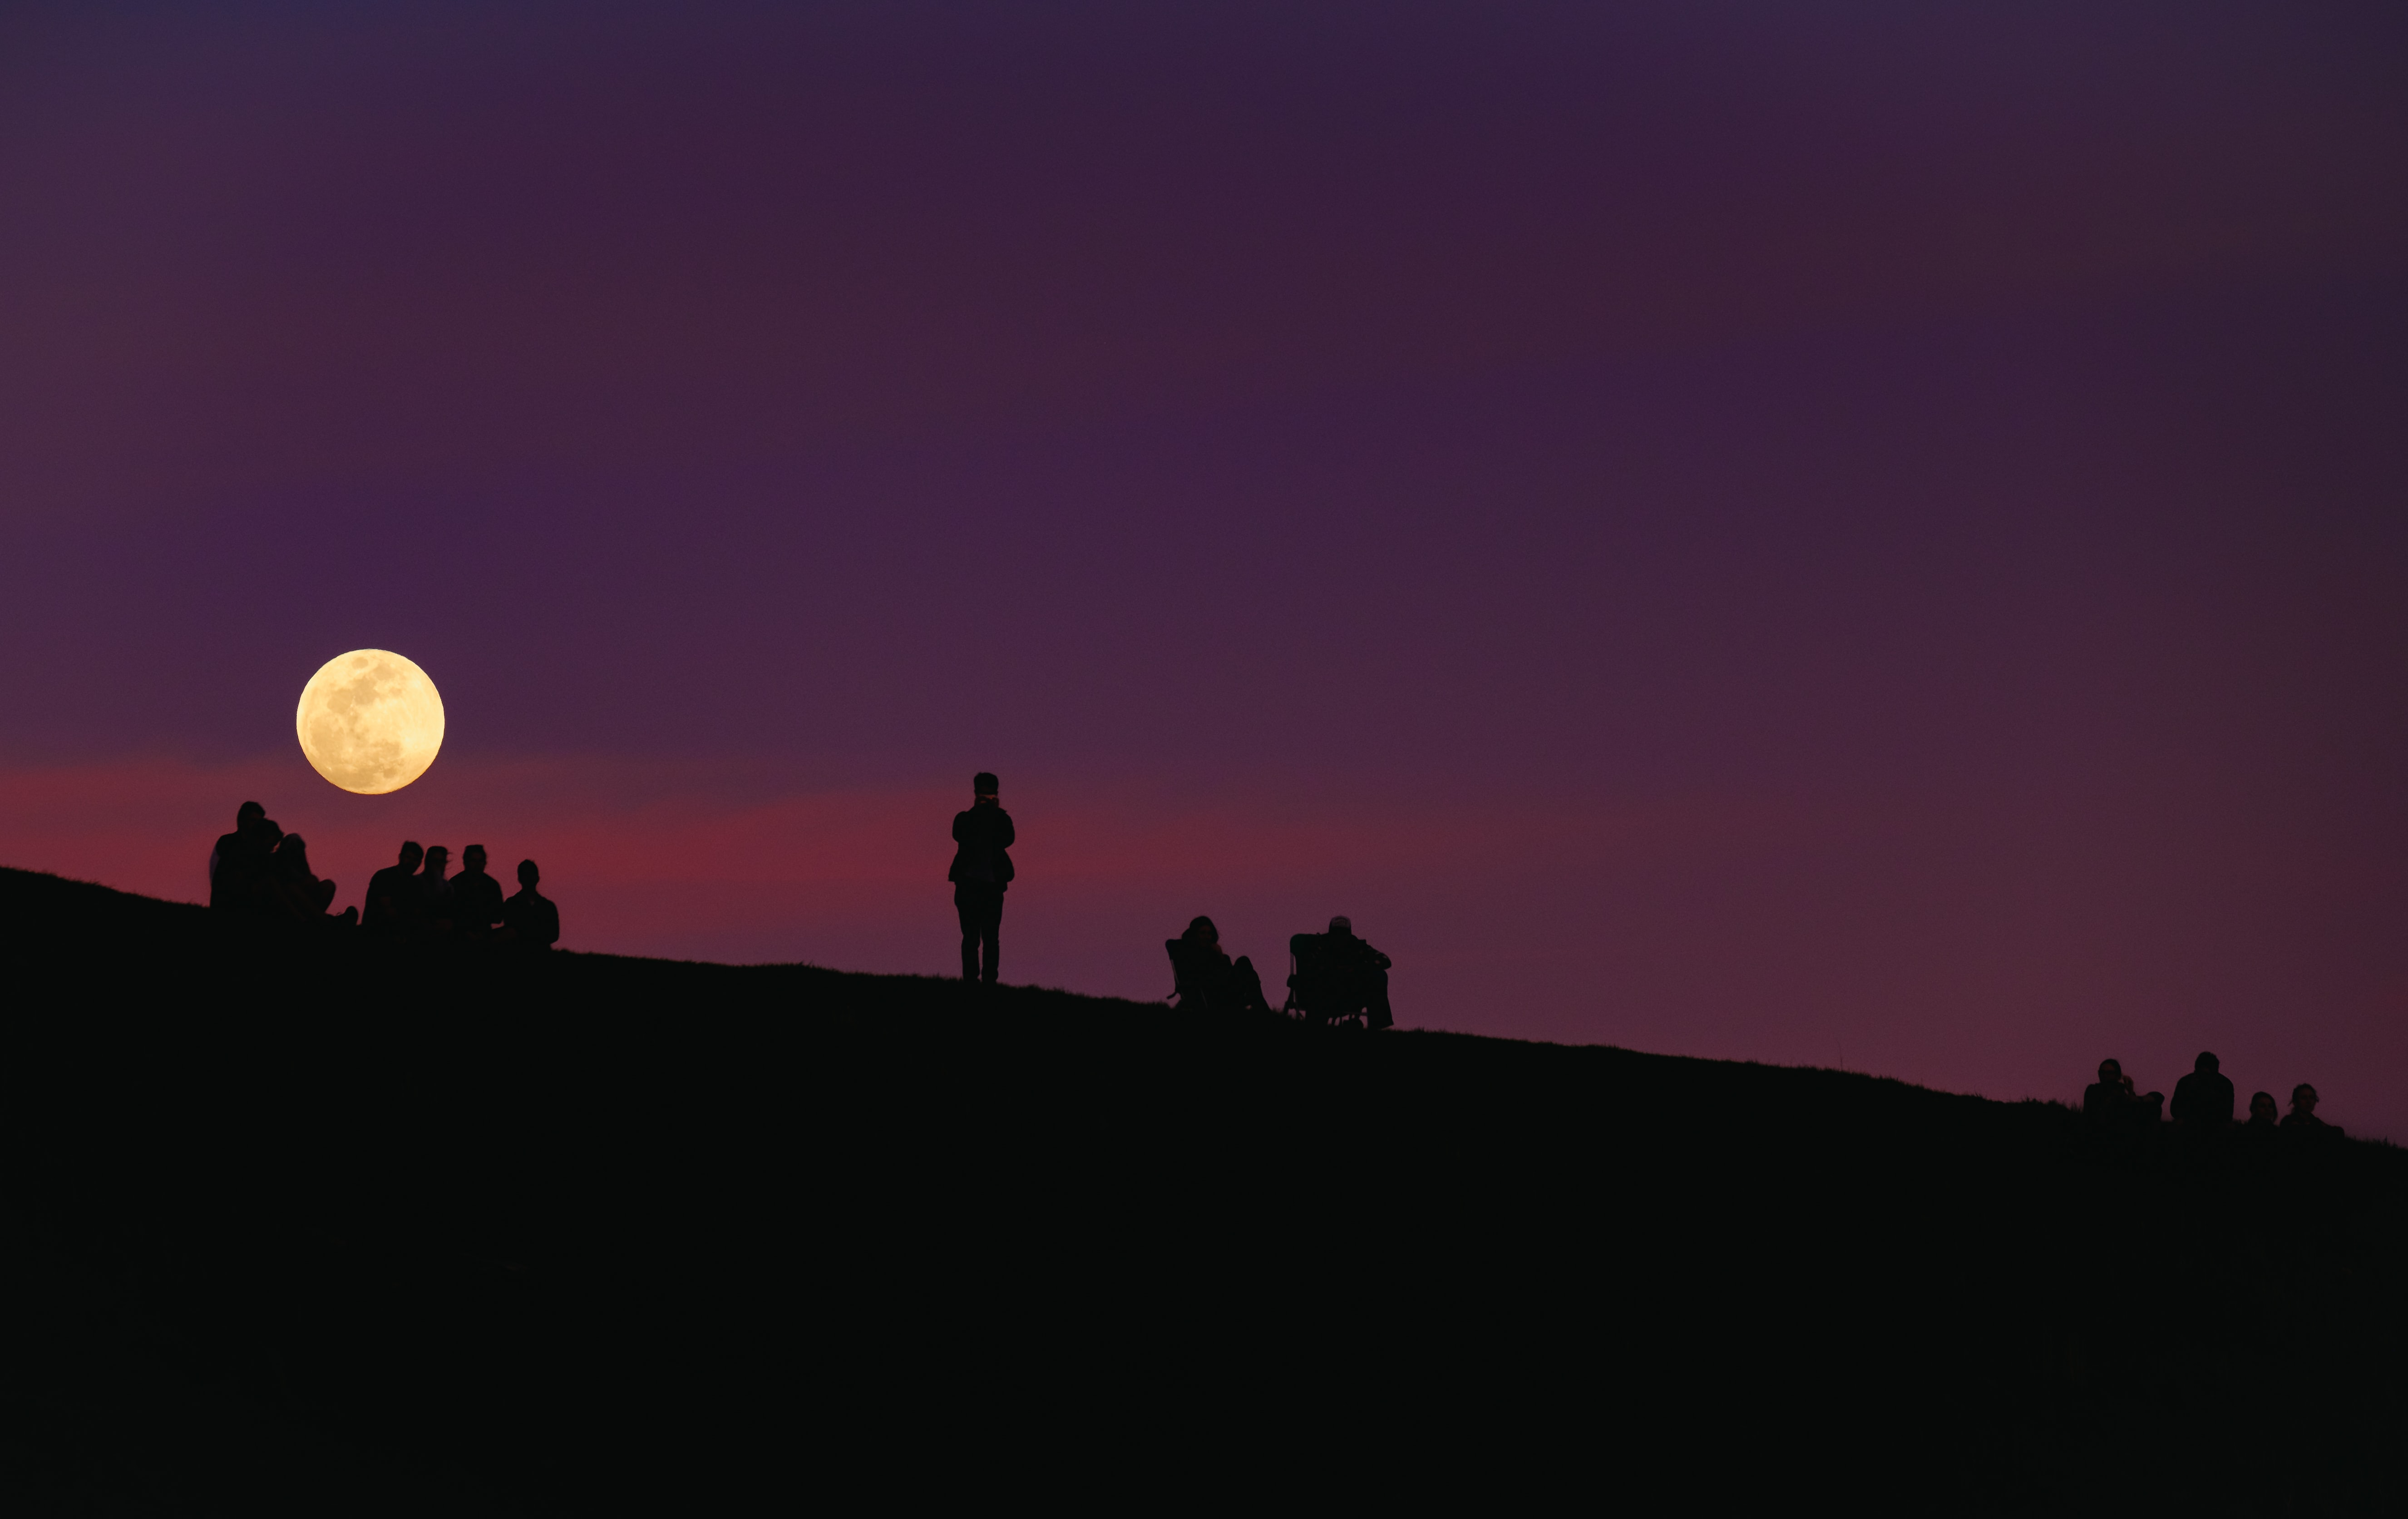 Moon rises on a purple sky over silhouettes of people on the slope of Mount Tamalpais